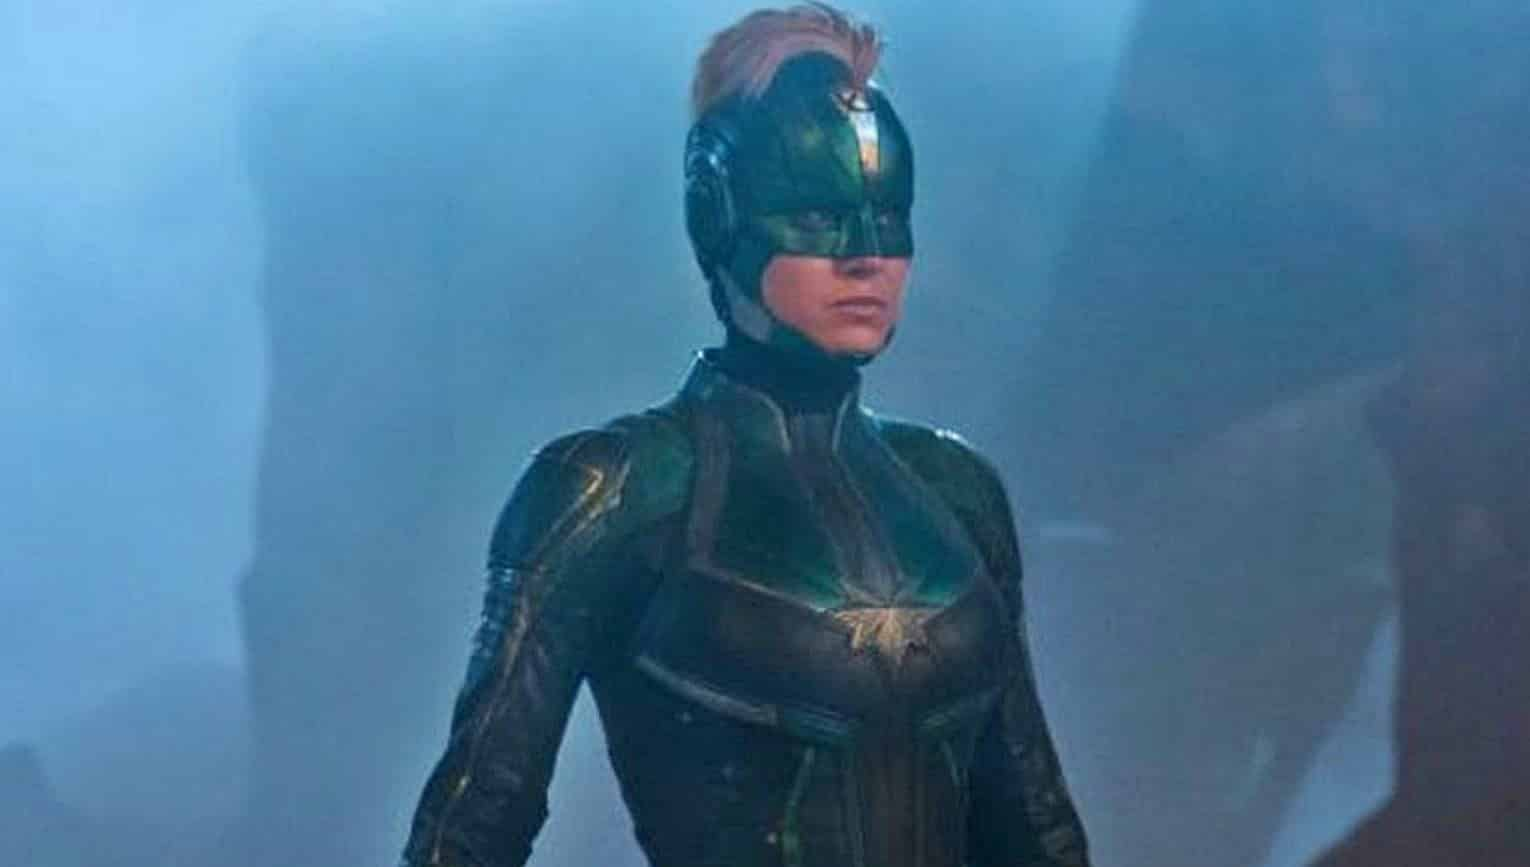 Captain Marvel Proves Shes No Skrull In Awesome New Trailer